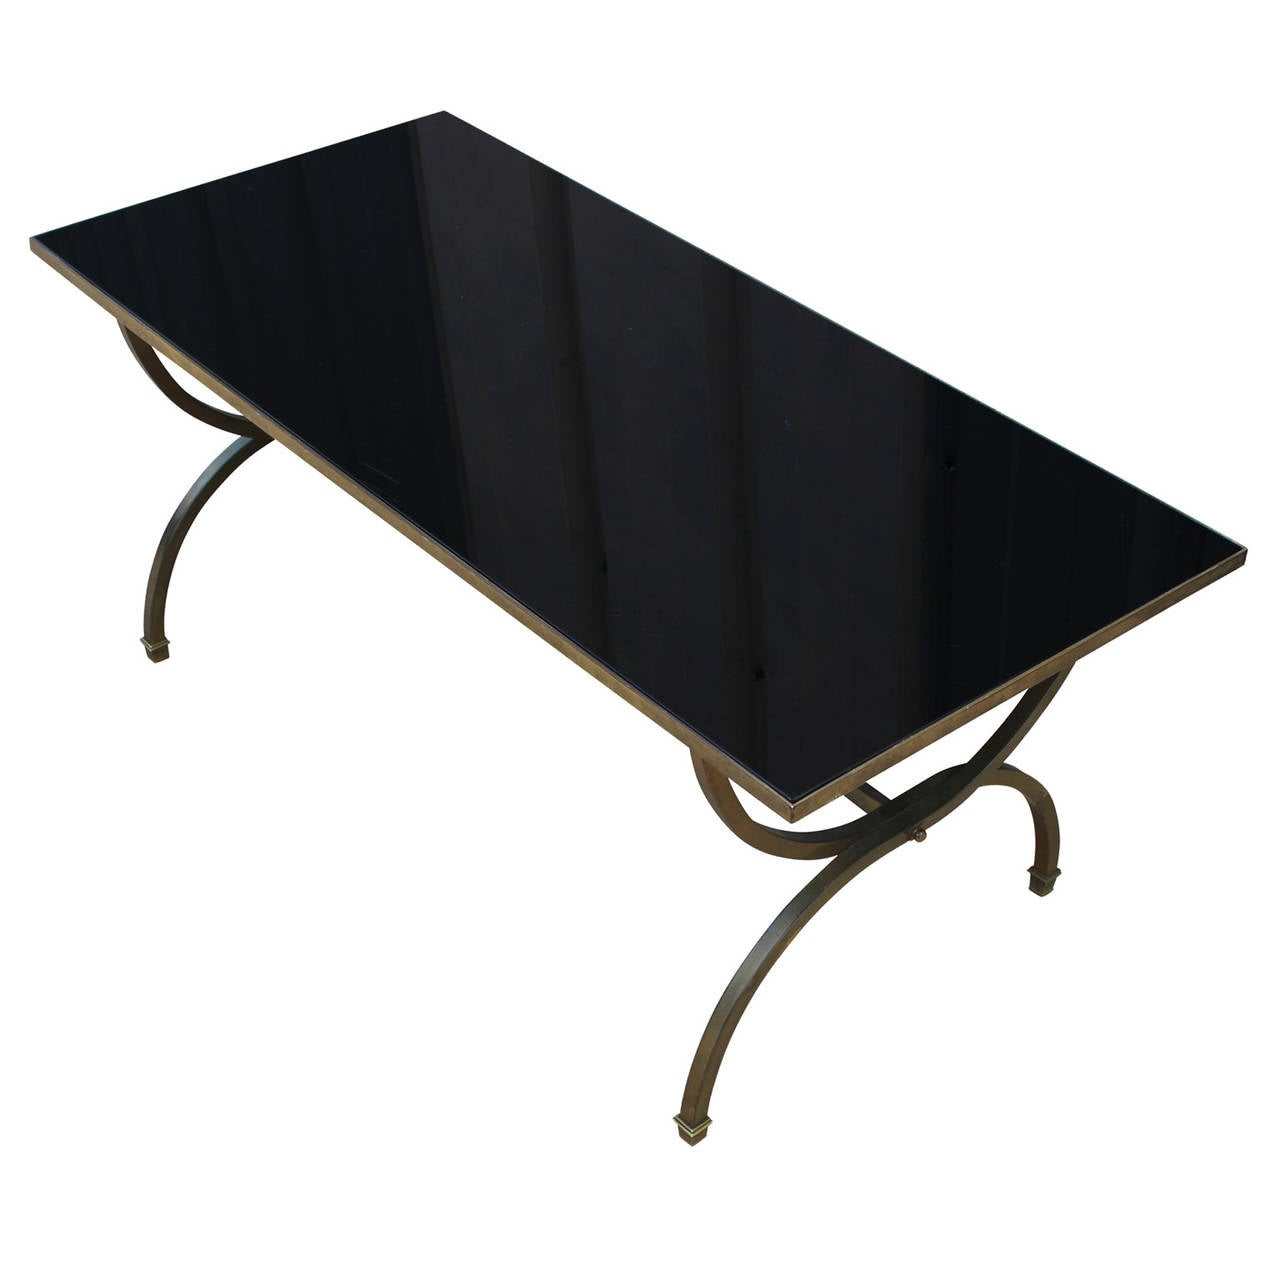 Hollywood regency style black glass and brass coffee table for Black glass coffee table